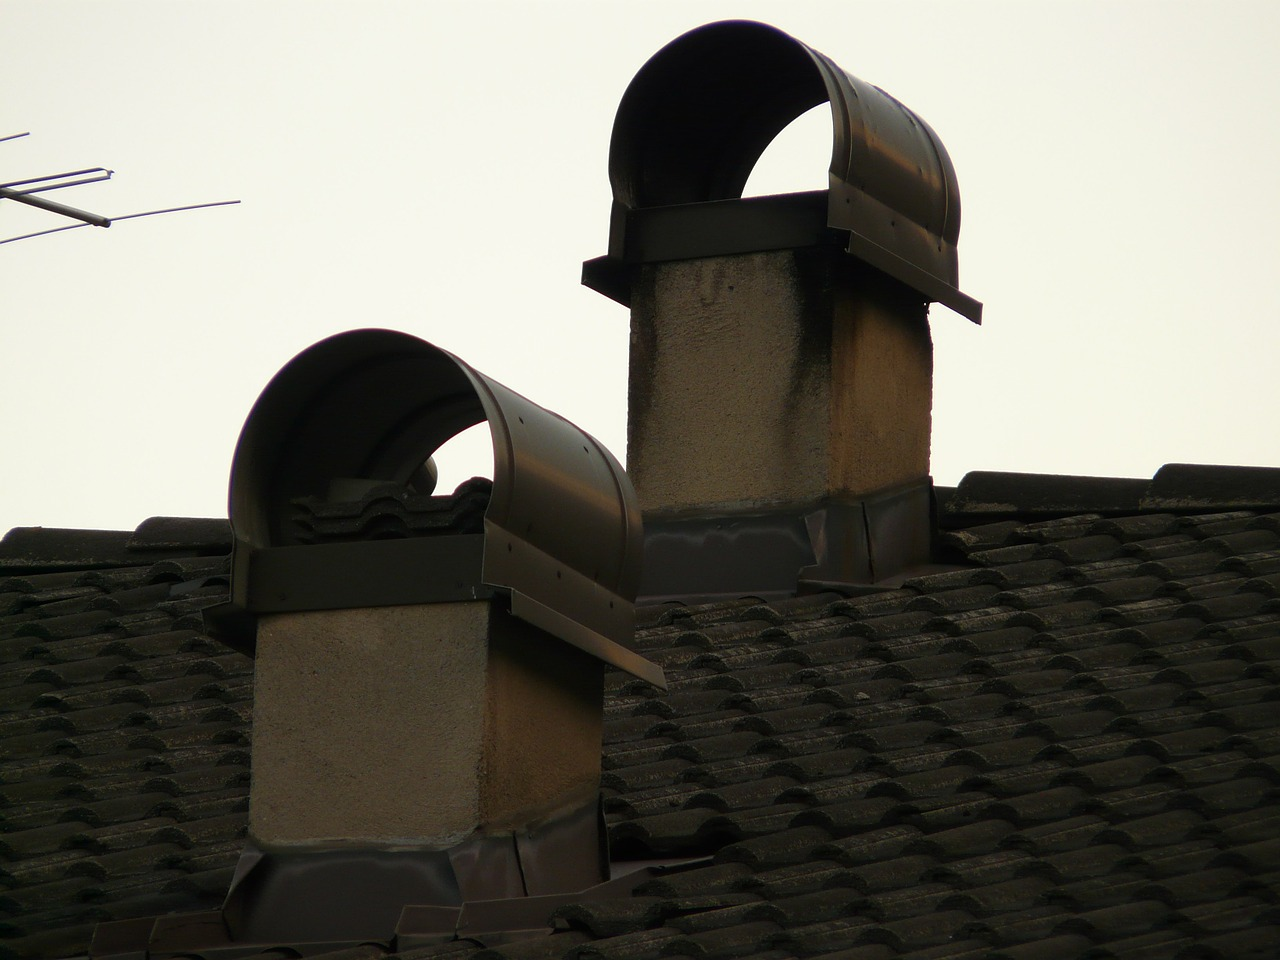 chimney fireplace roof free photo